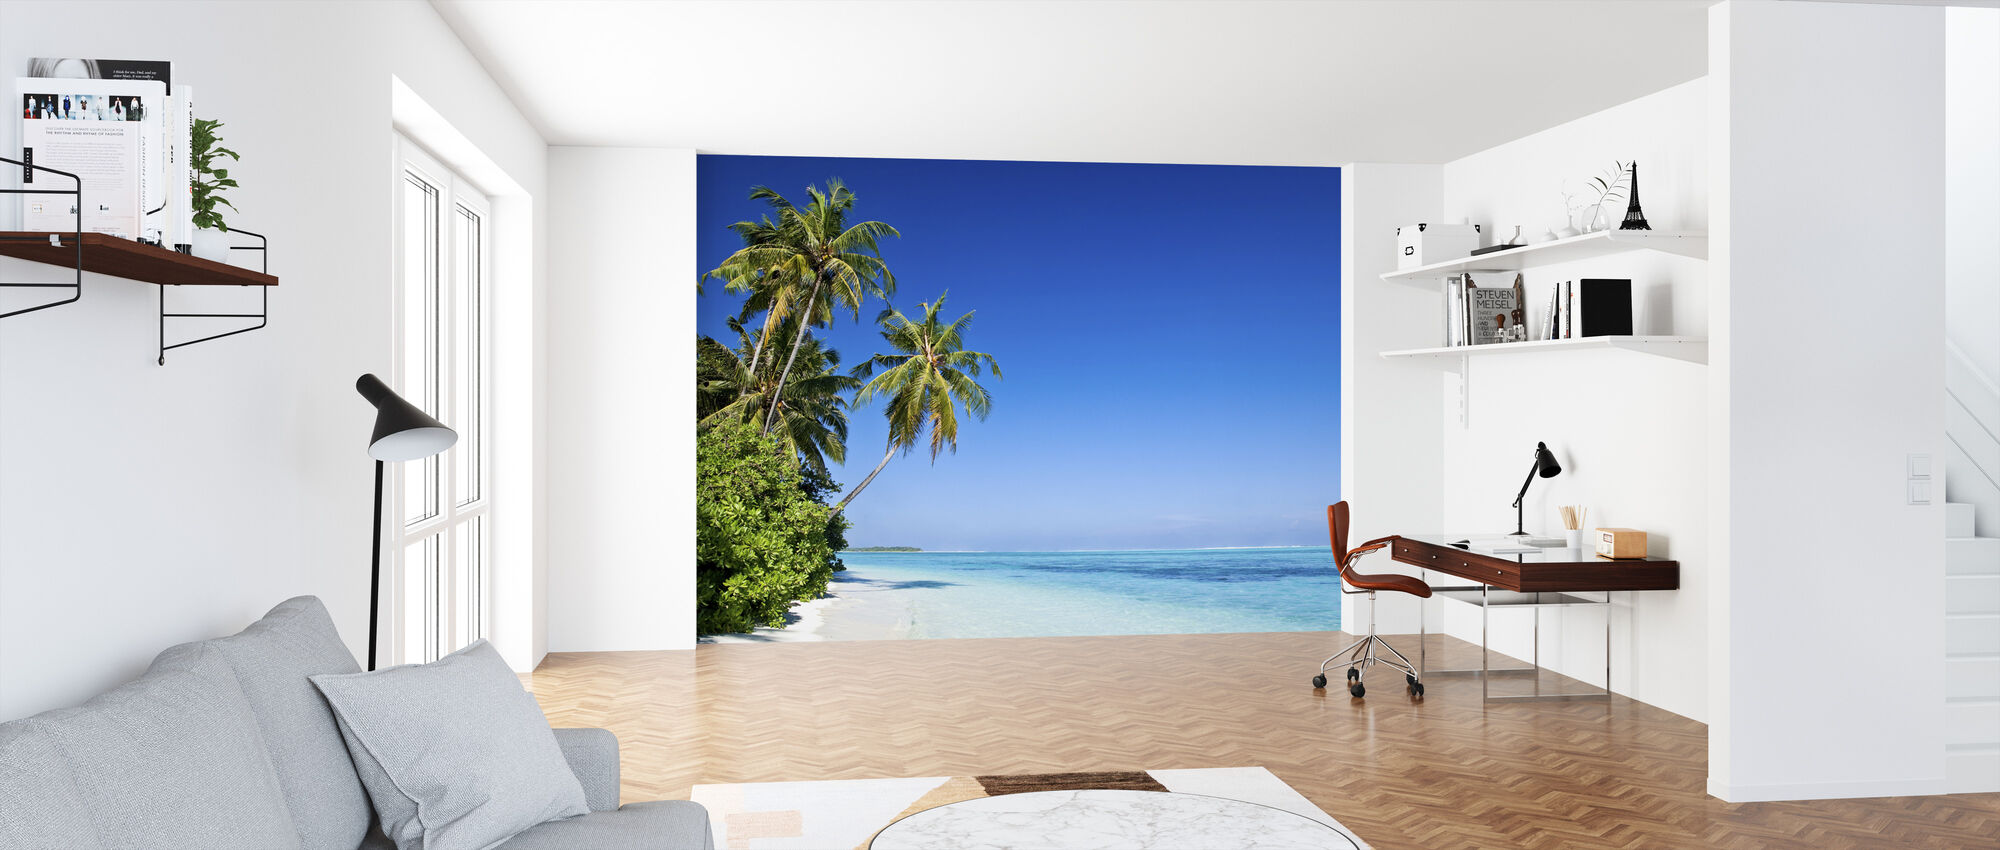 Tropical Paradise - Wallpaper - Office